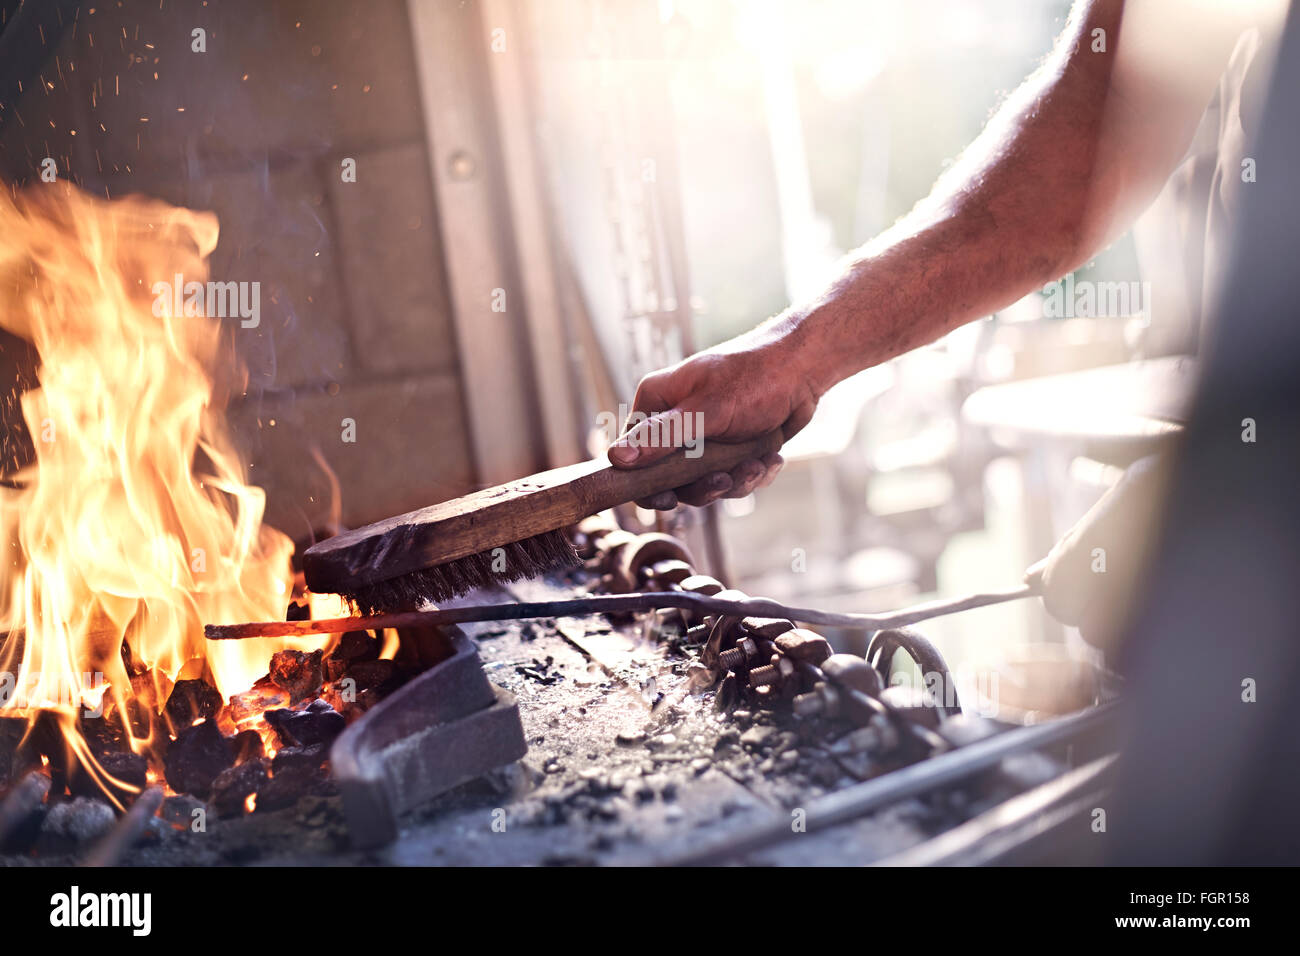 Blacksmith heating tool at fire in forge - Stock Image